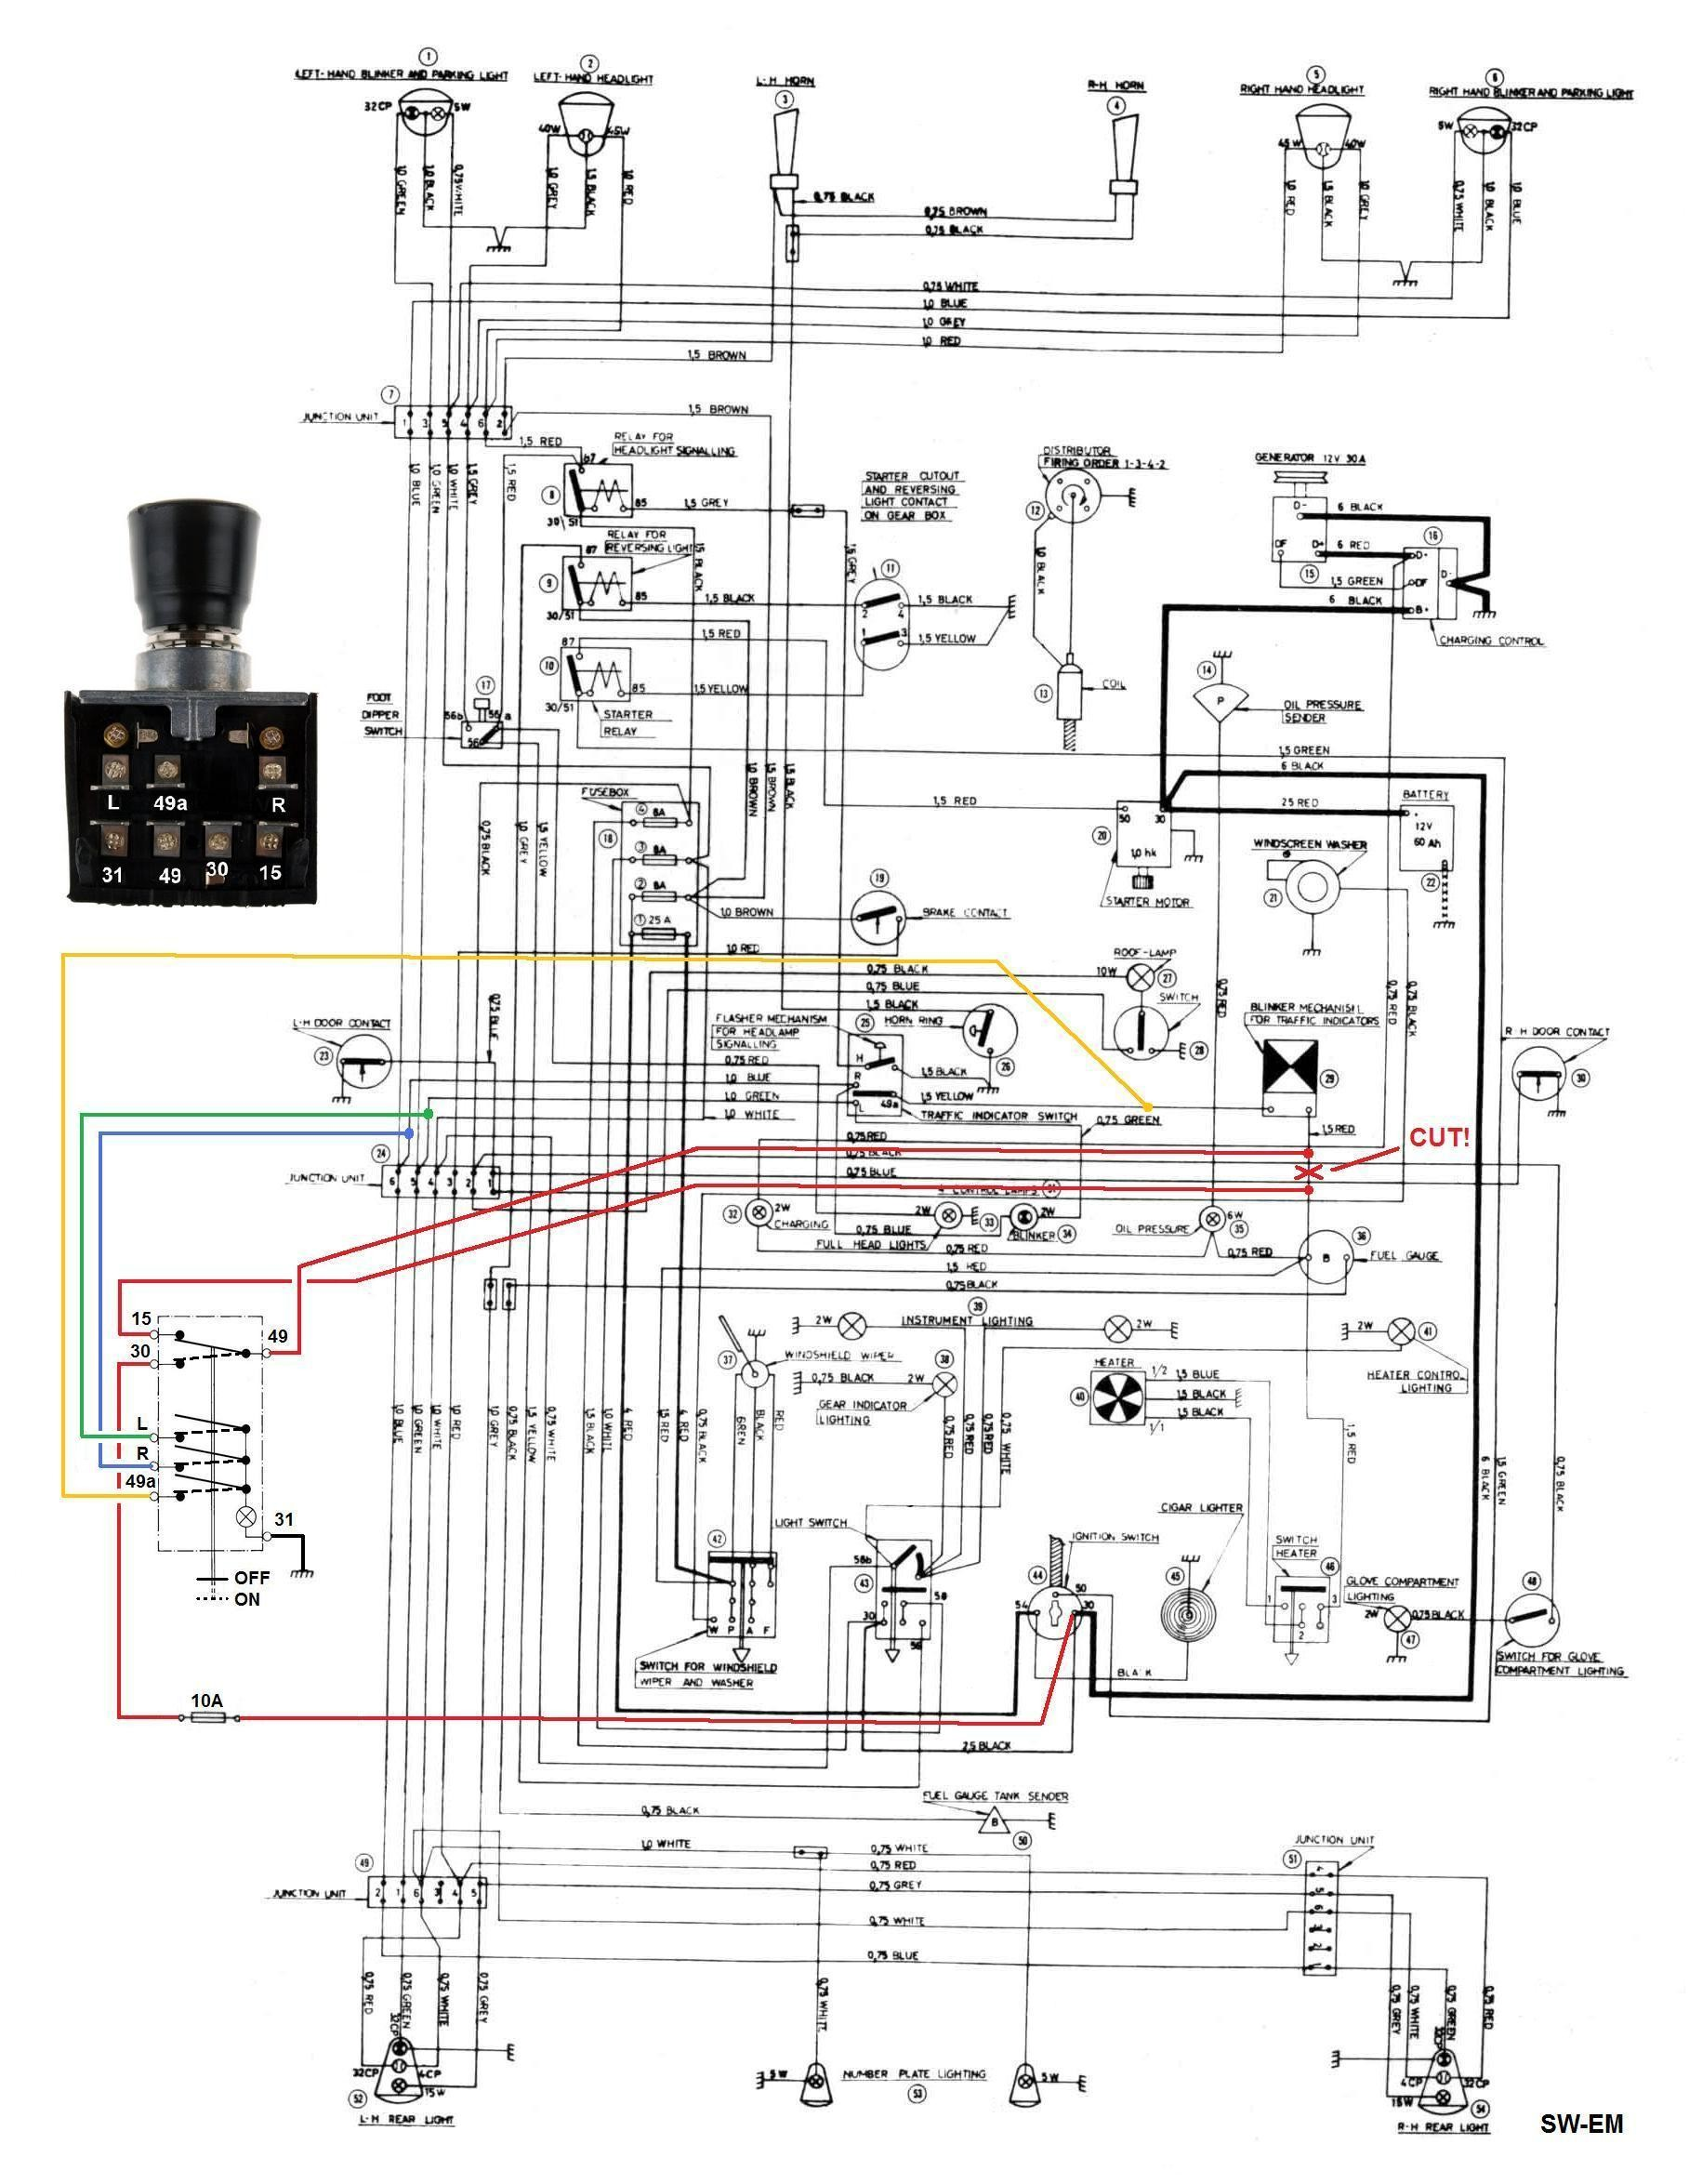 Electronic Turn Signal Flasher Schematic Sw Em Emergency Flasher Of Electronic Turn Signal Flasher Schematic